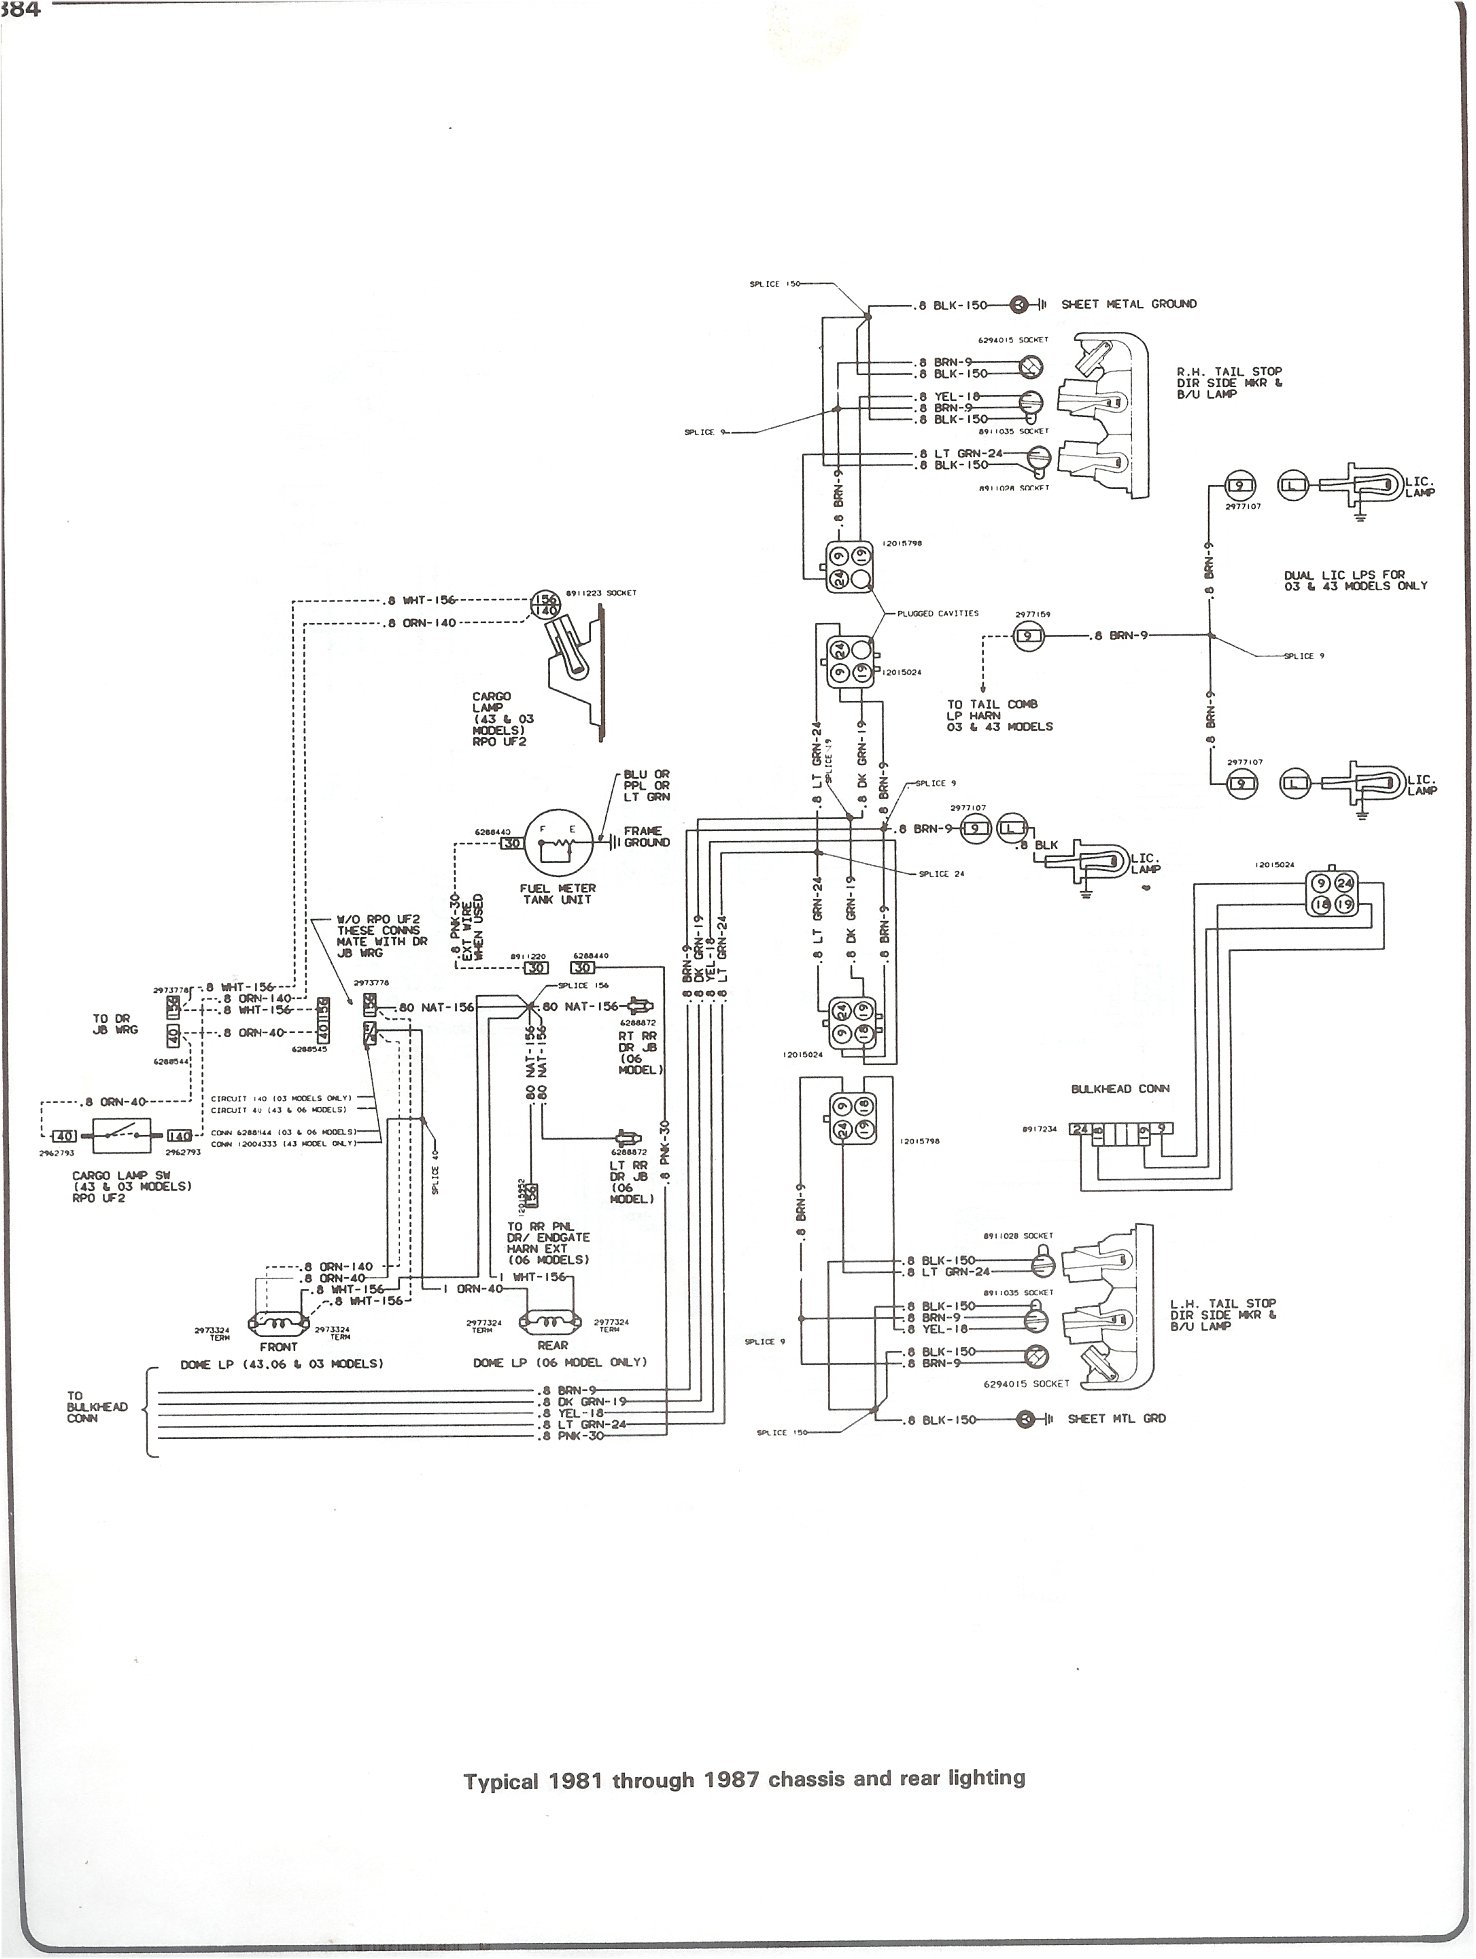 complete 73 87 wiring diagrams rh forum 73 87chevytrucks com 1959 chevrolet truck wiring diagram chevrolet silverado wiring diagrams